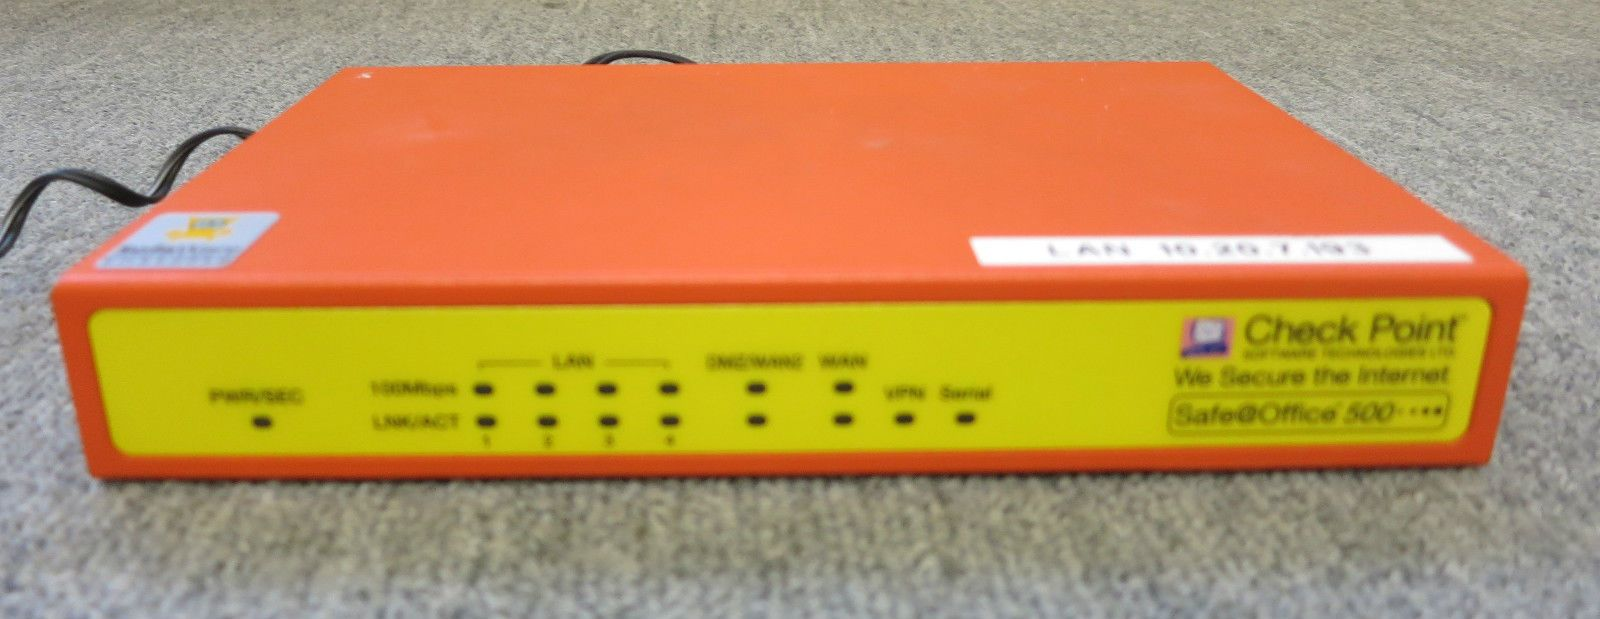 Check Point SBX-166LHGE-5 500 Firewall And VPN Unit Internet Security